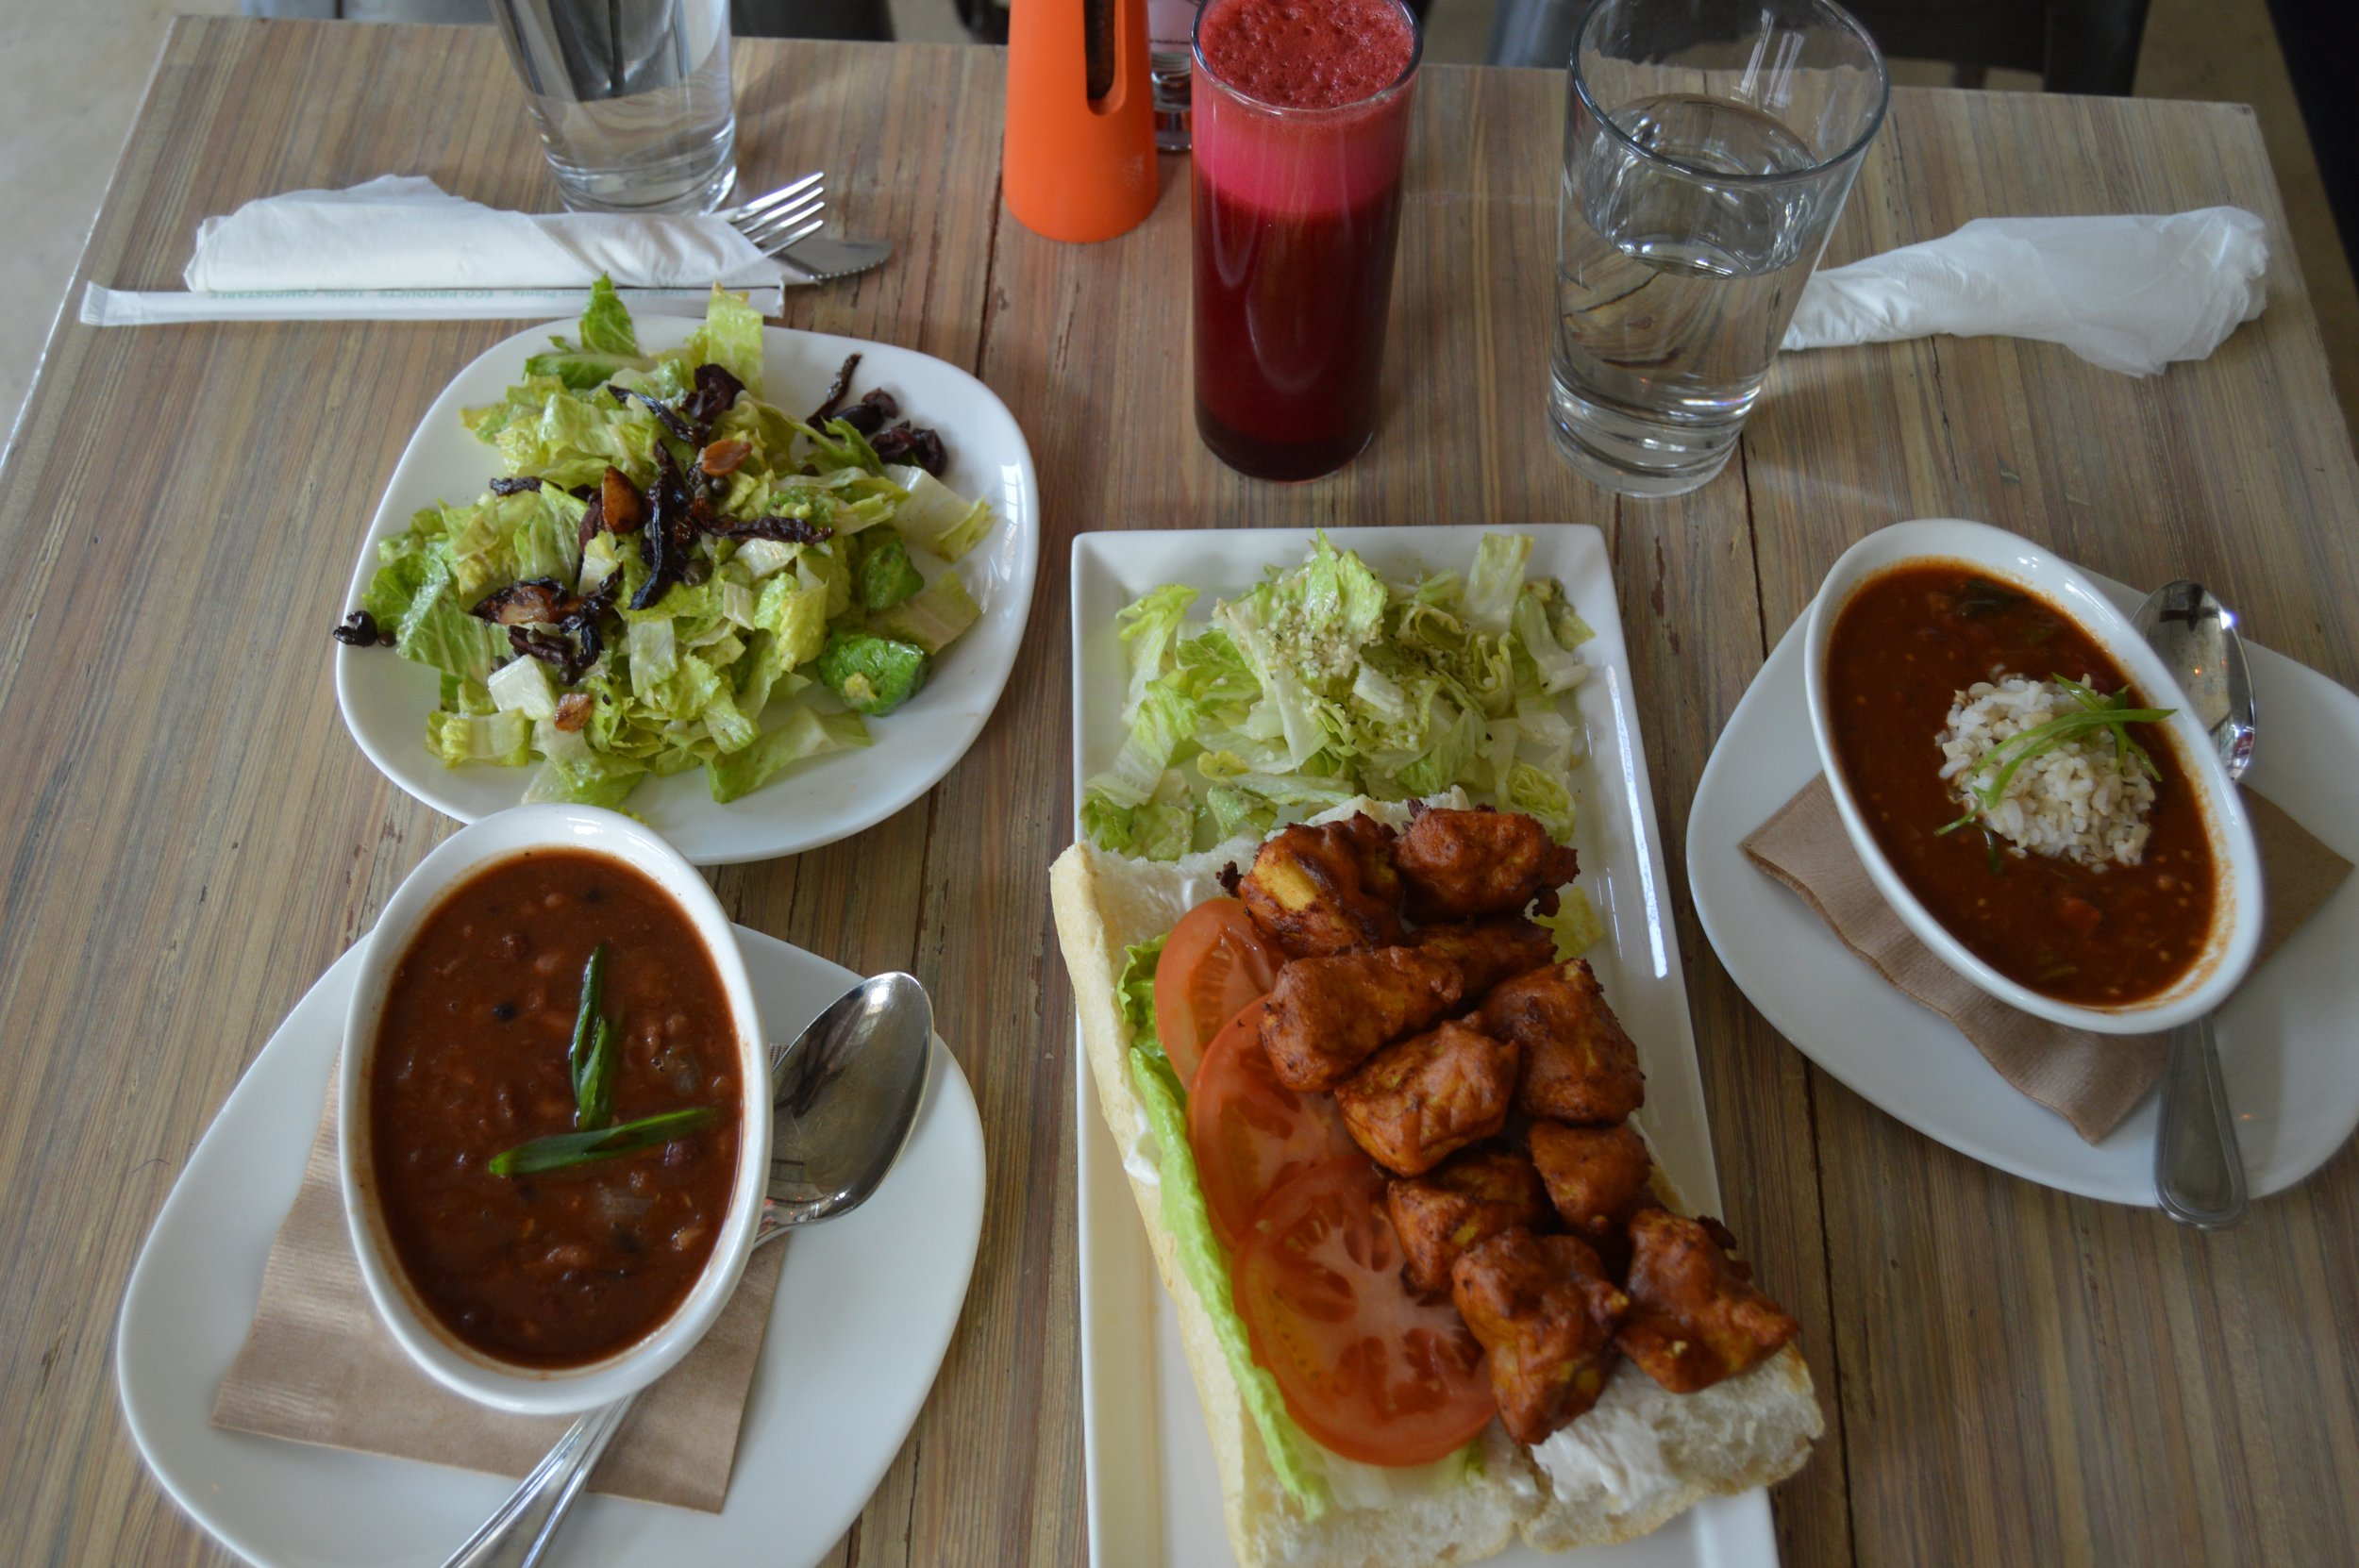 Seed Caesar, Three Bean Chili, Southern Fried Poboy & Seed Gumbo Juice: The Standard (carrots, beets, granny smith apples,ginger)